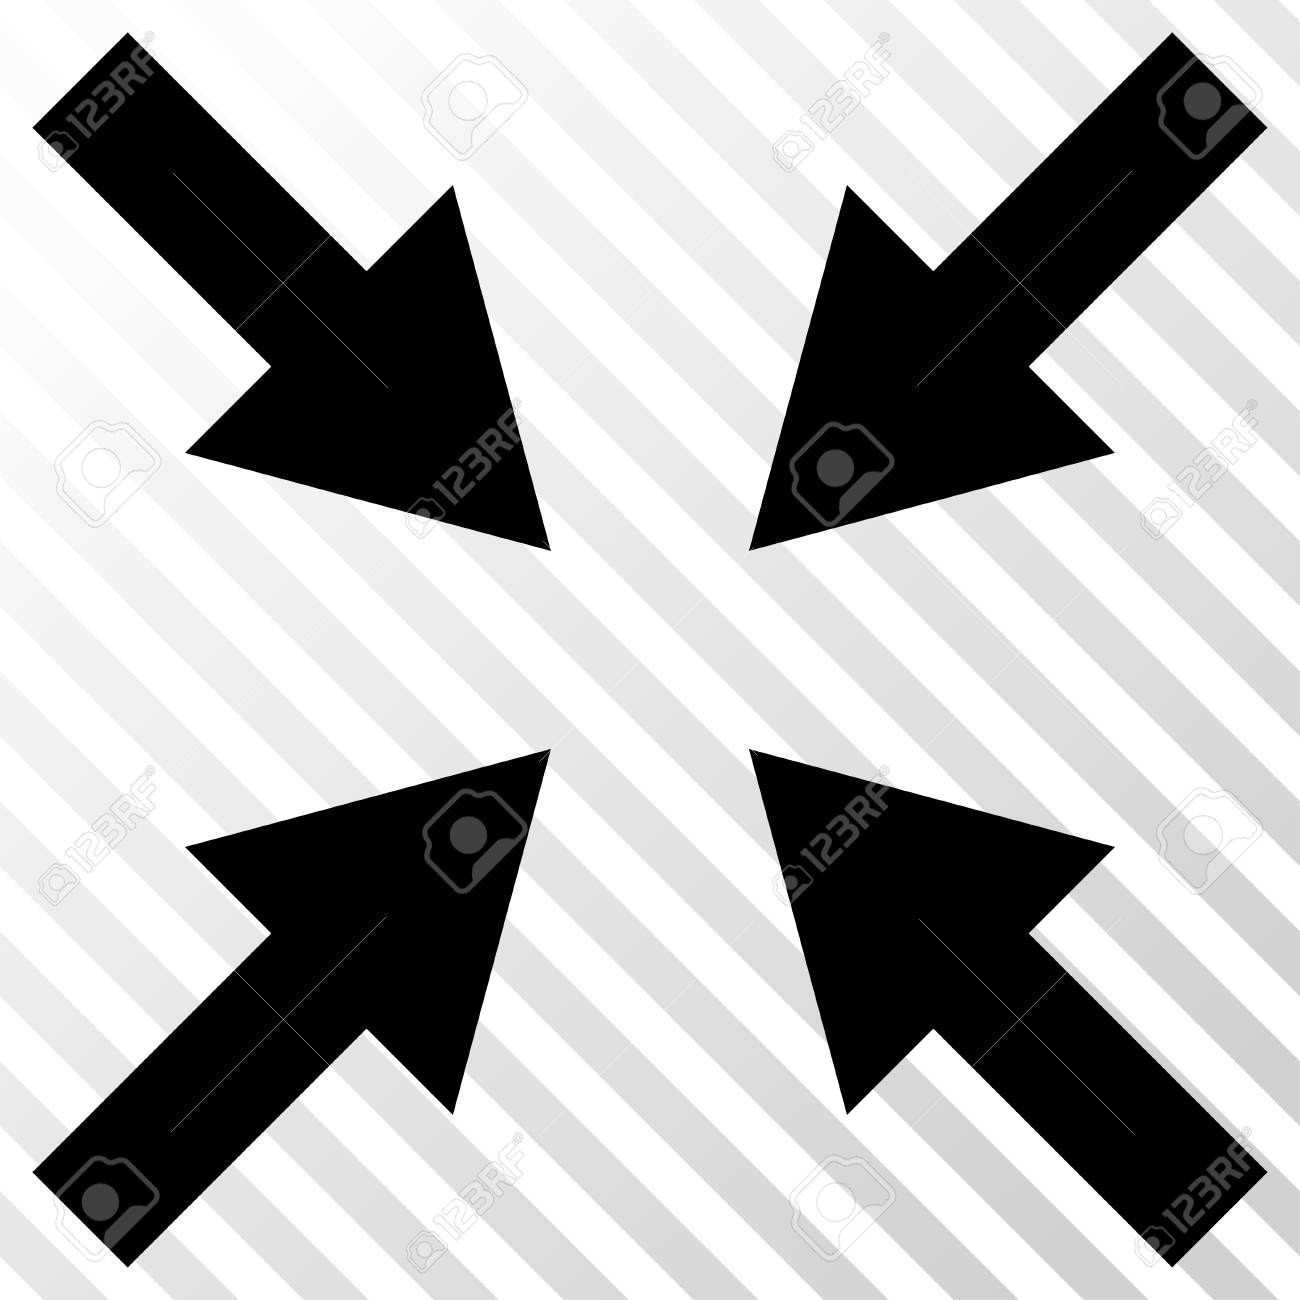 Compress Arrows Vector Icon Image Style Is A Flat Black Pictogram